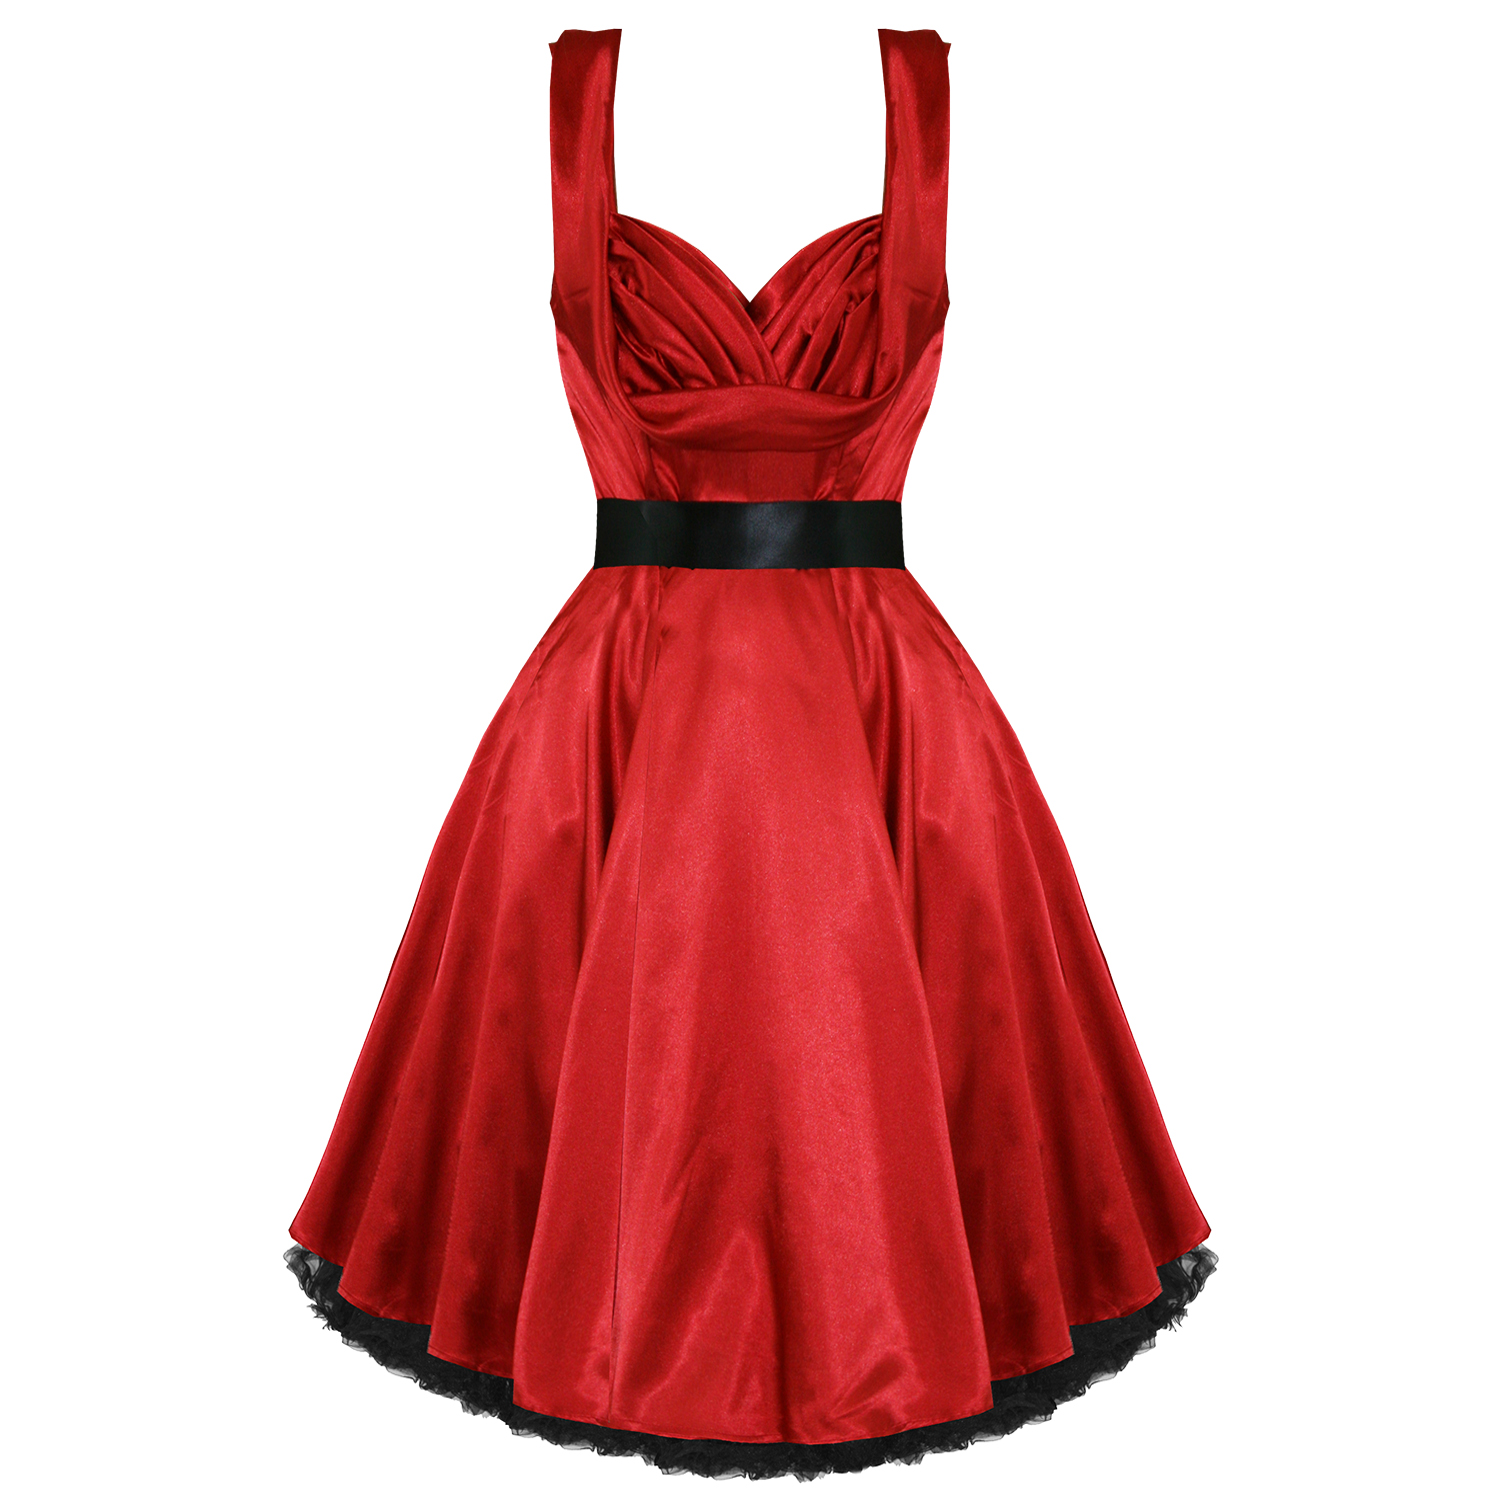 LADIES-NEW-RED-SATIN-VINTAGE-50S-RETRO-PINUP-PARTY-PROM-SWING-EVENING-DRESS